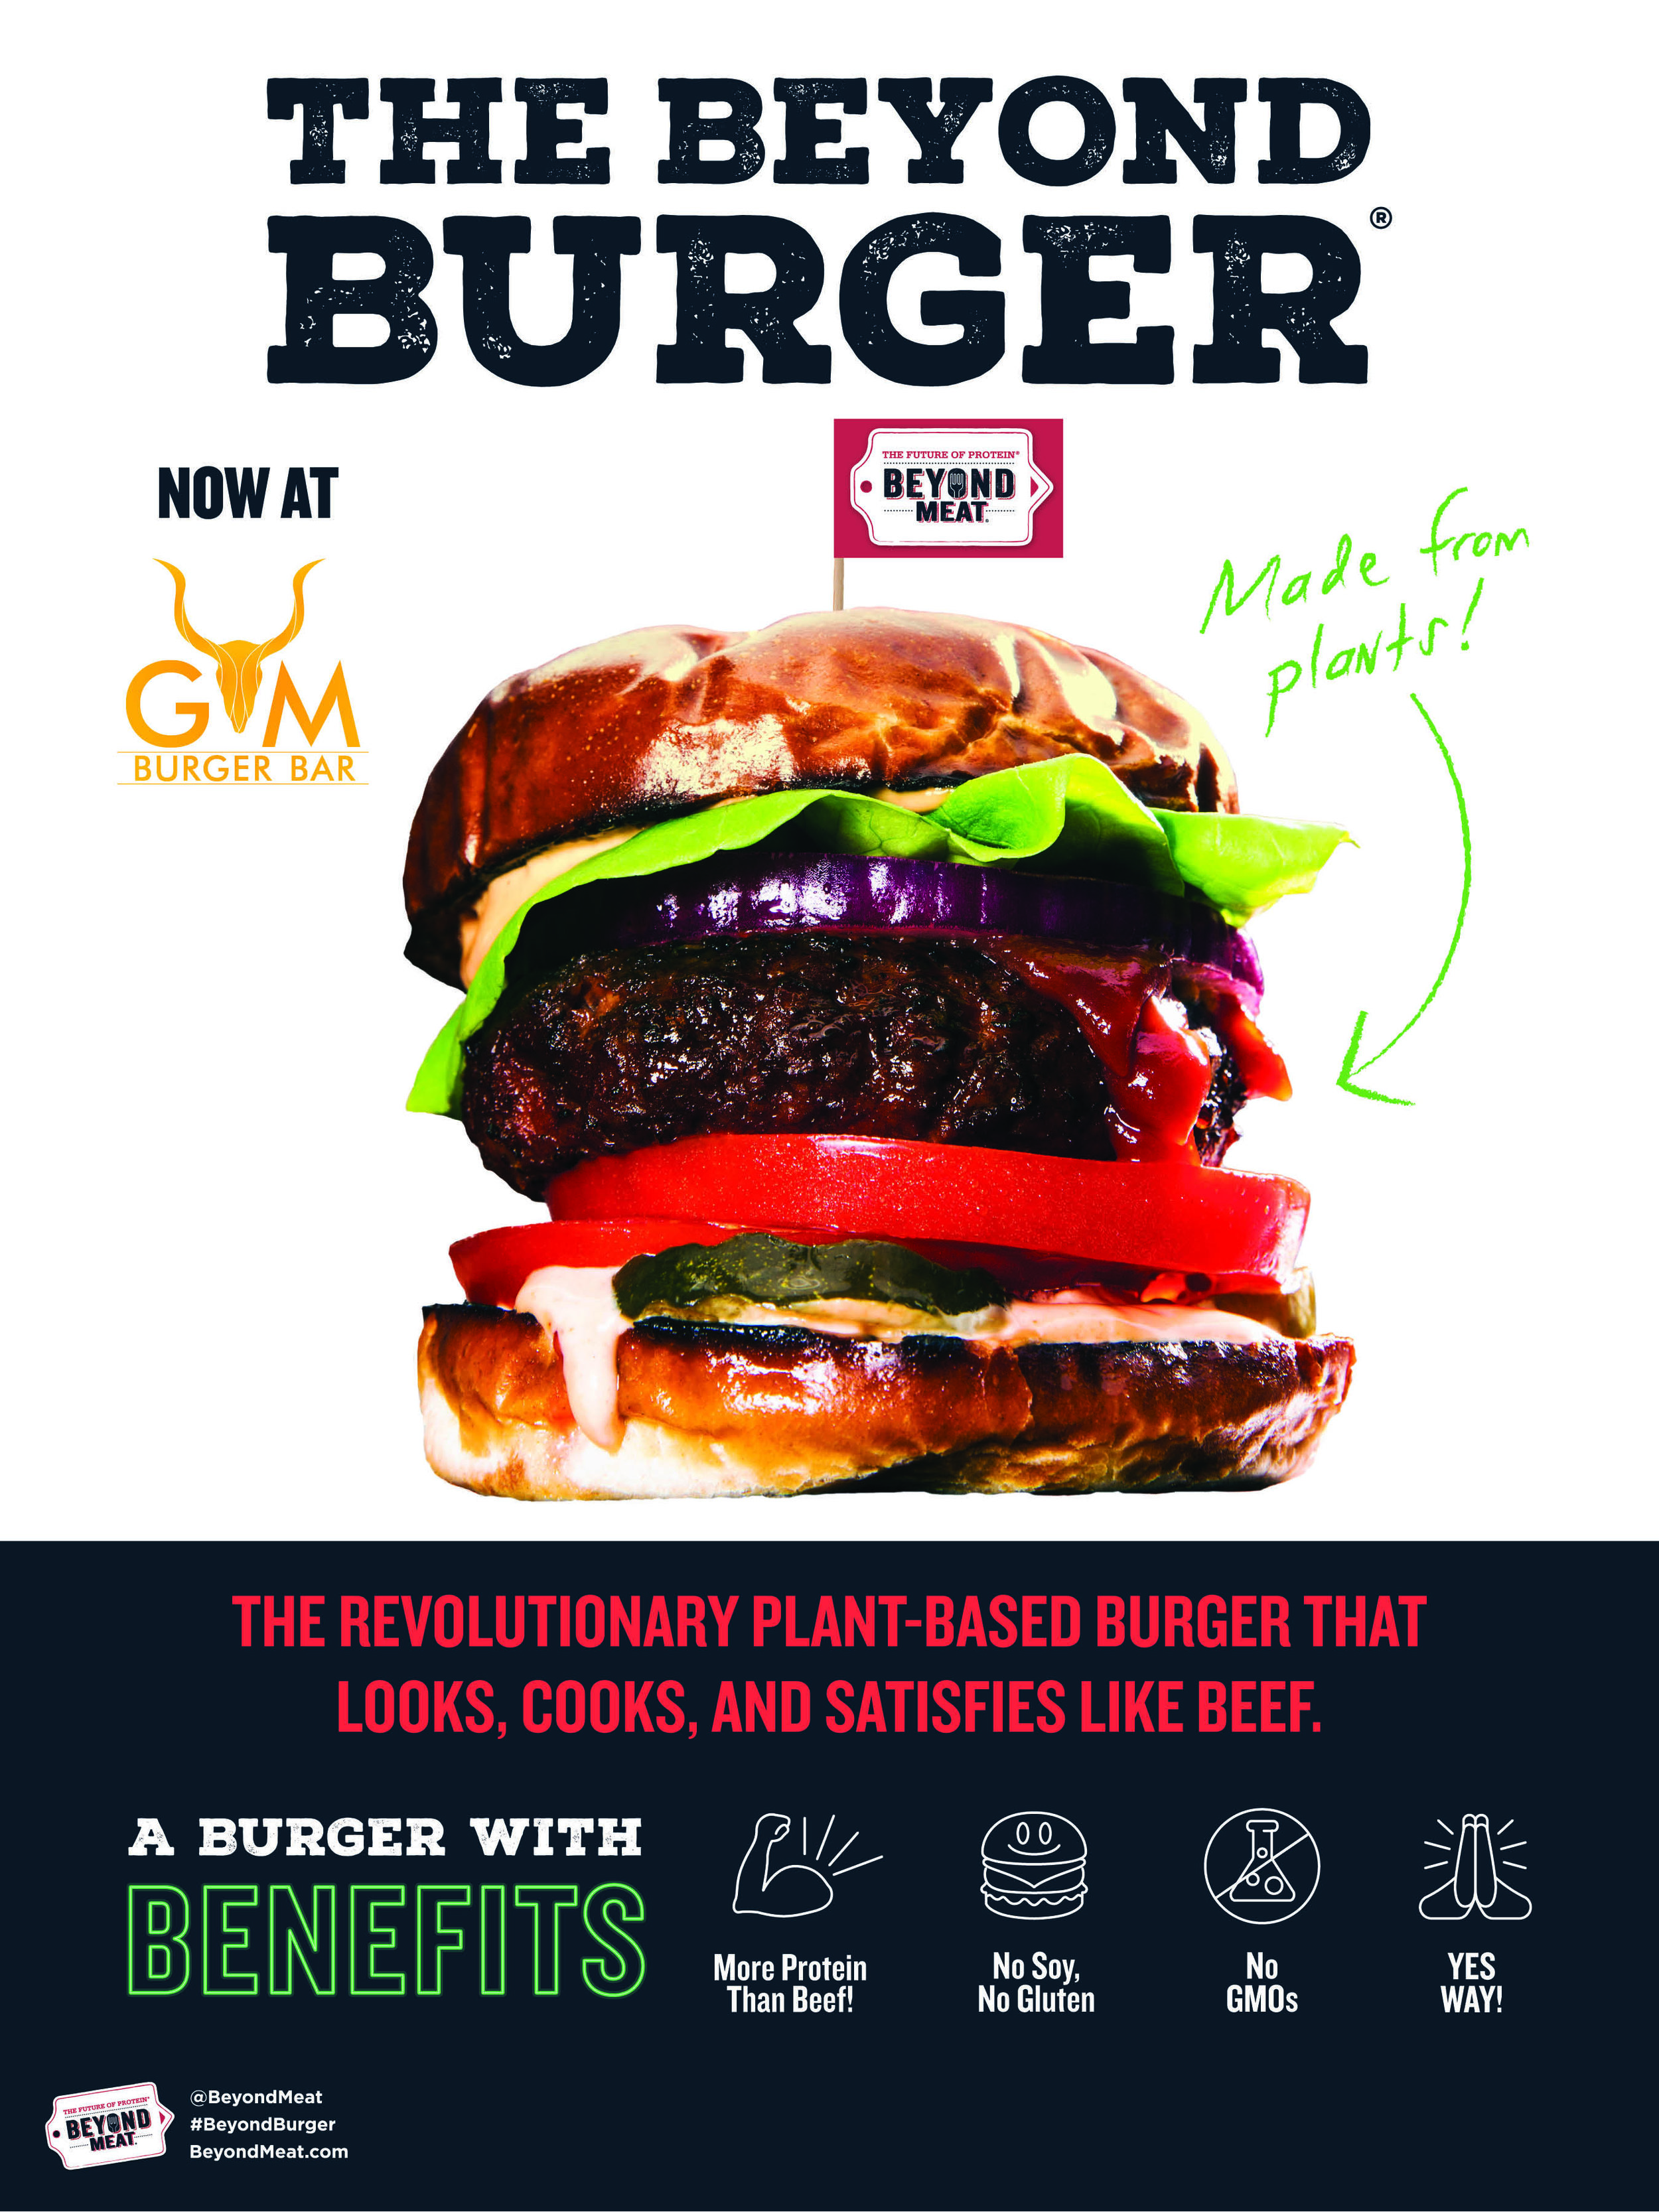 Beyond Burger promotion, plant based burger